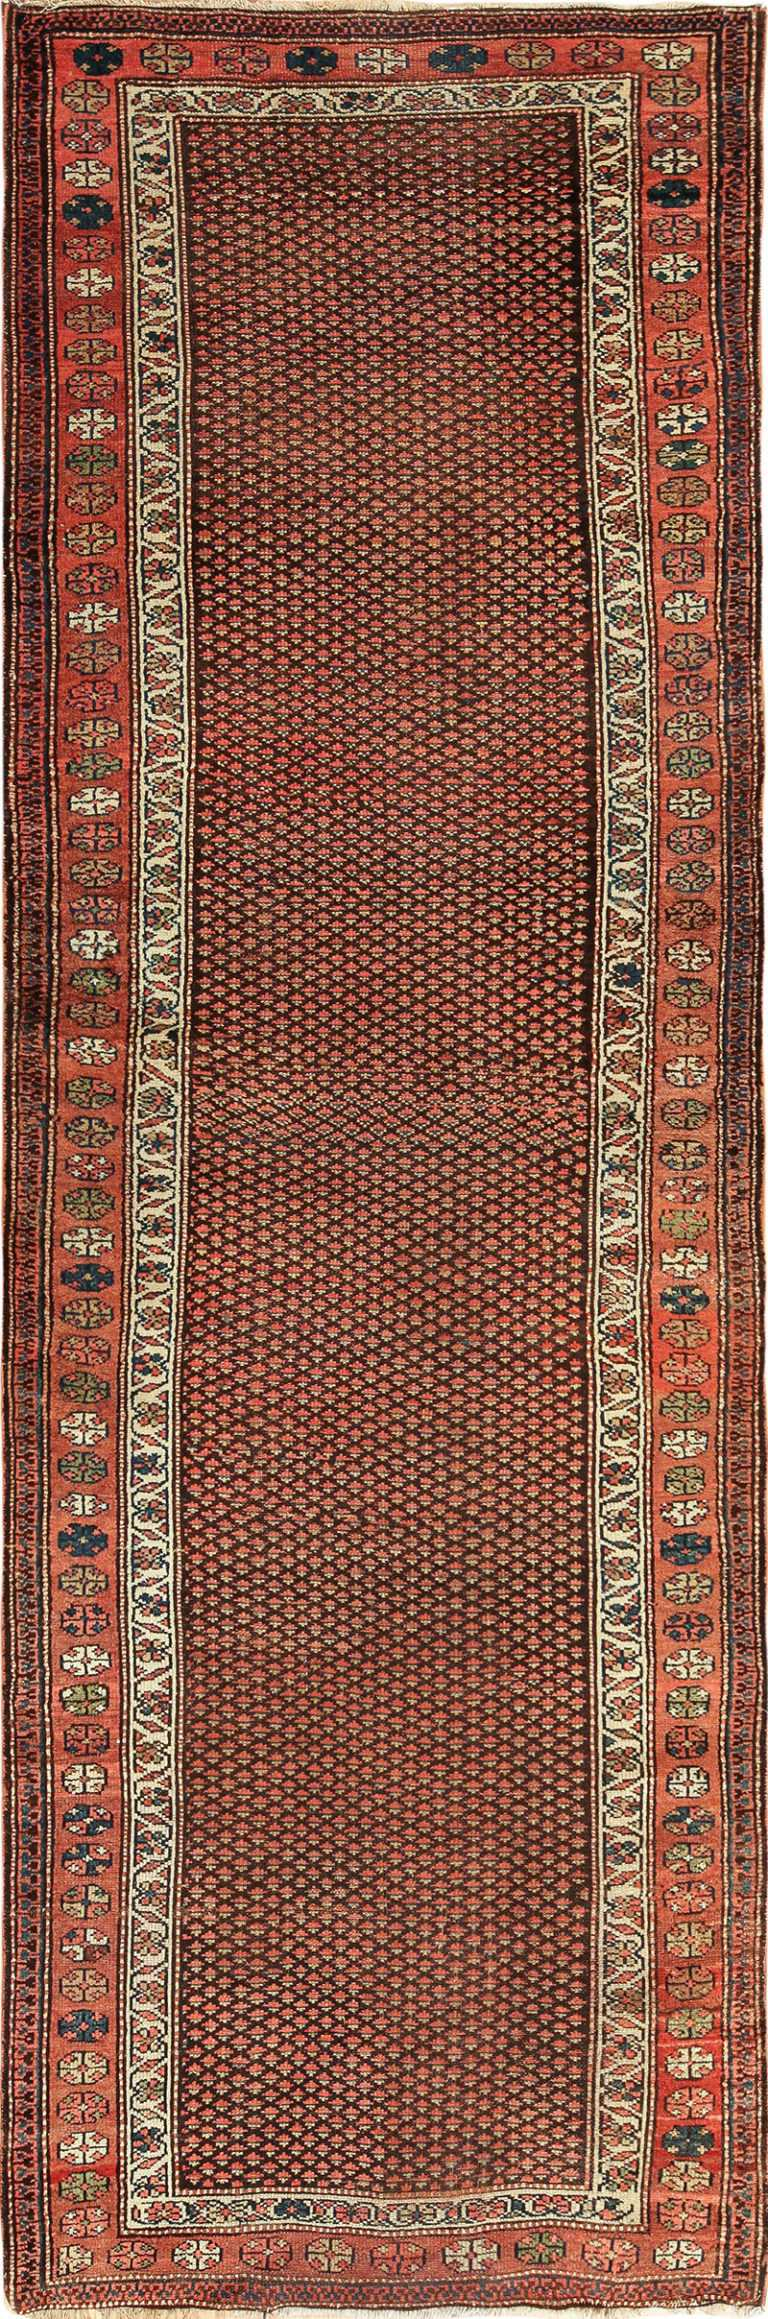 Antique Tribal Northwest Persian Runner Rug 49711 by Nazmiyal